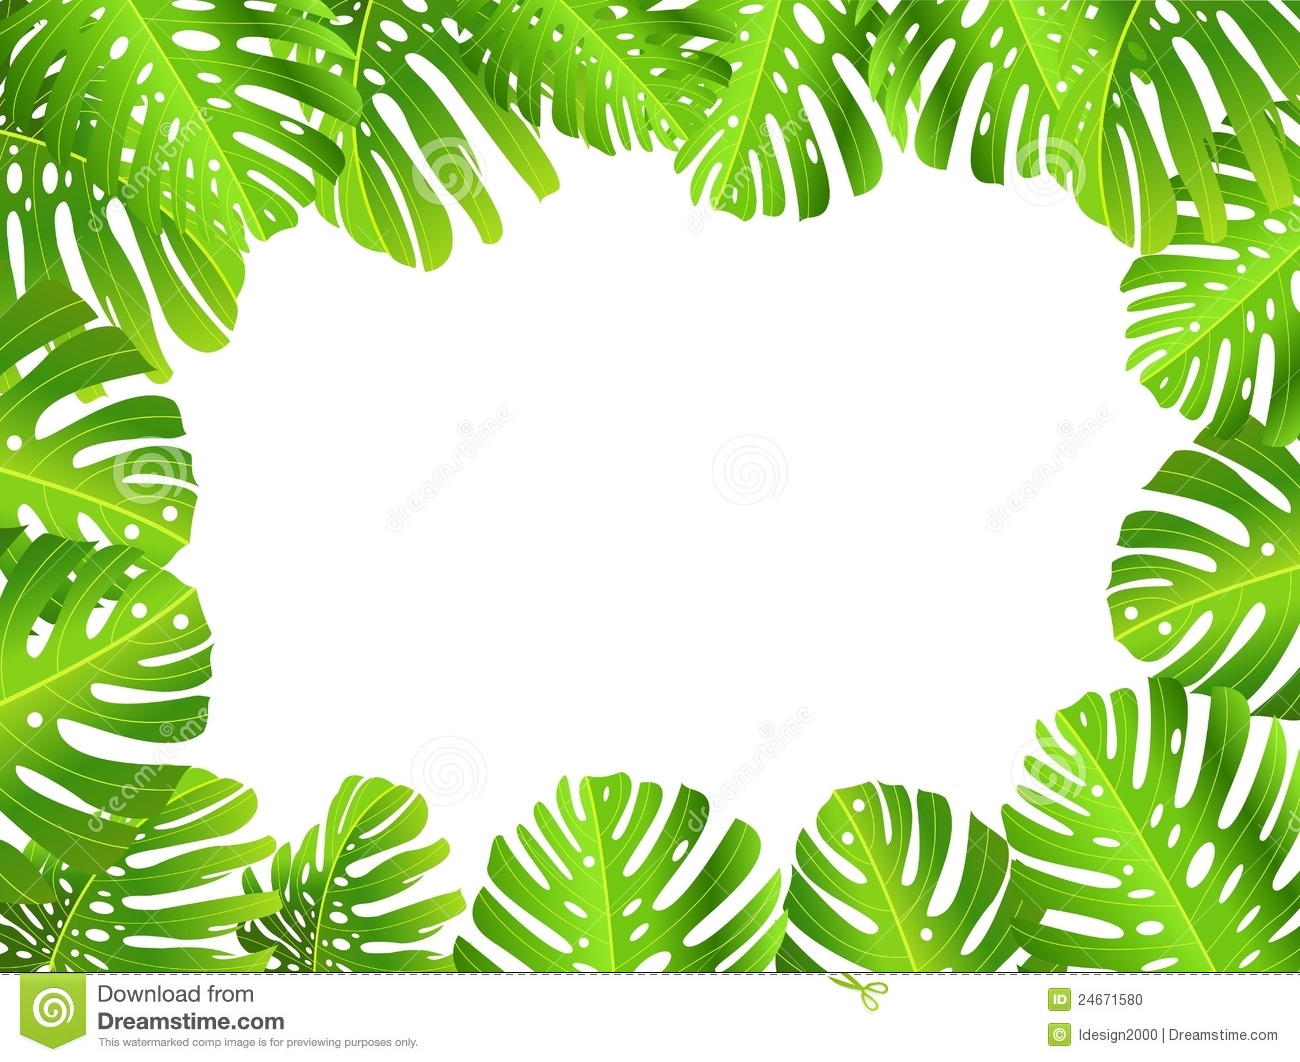 Stock Photo  Tropical Forest Background  Image  24671580